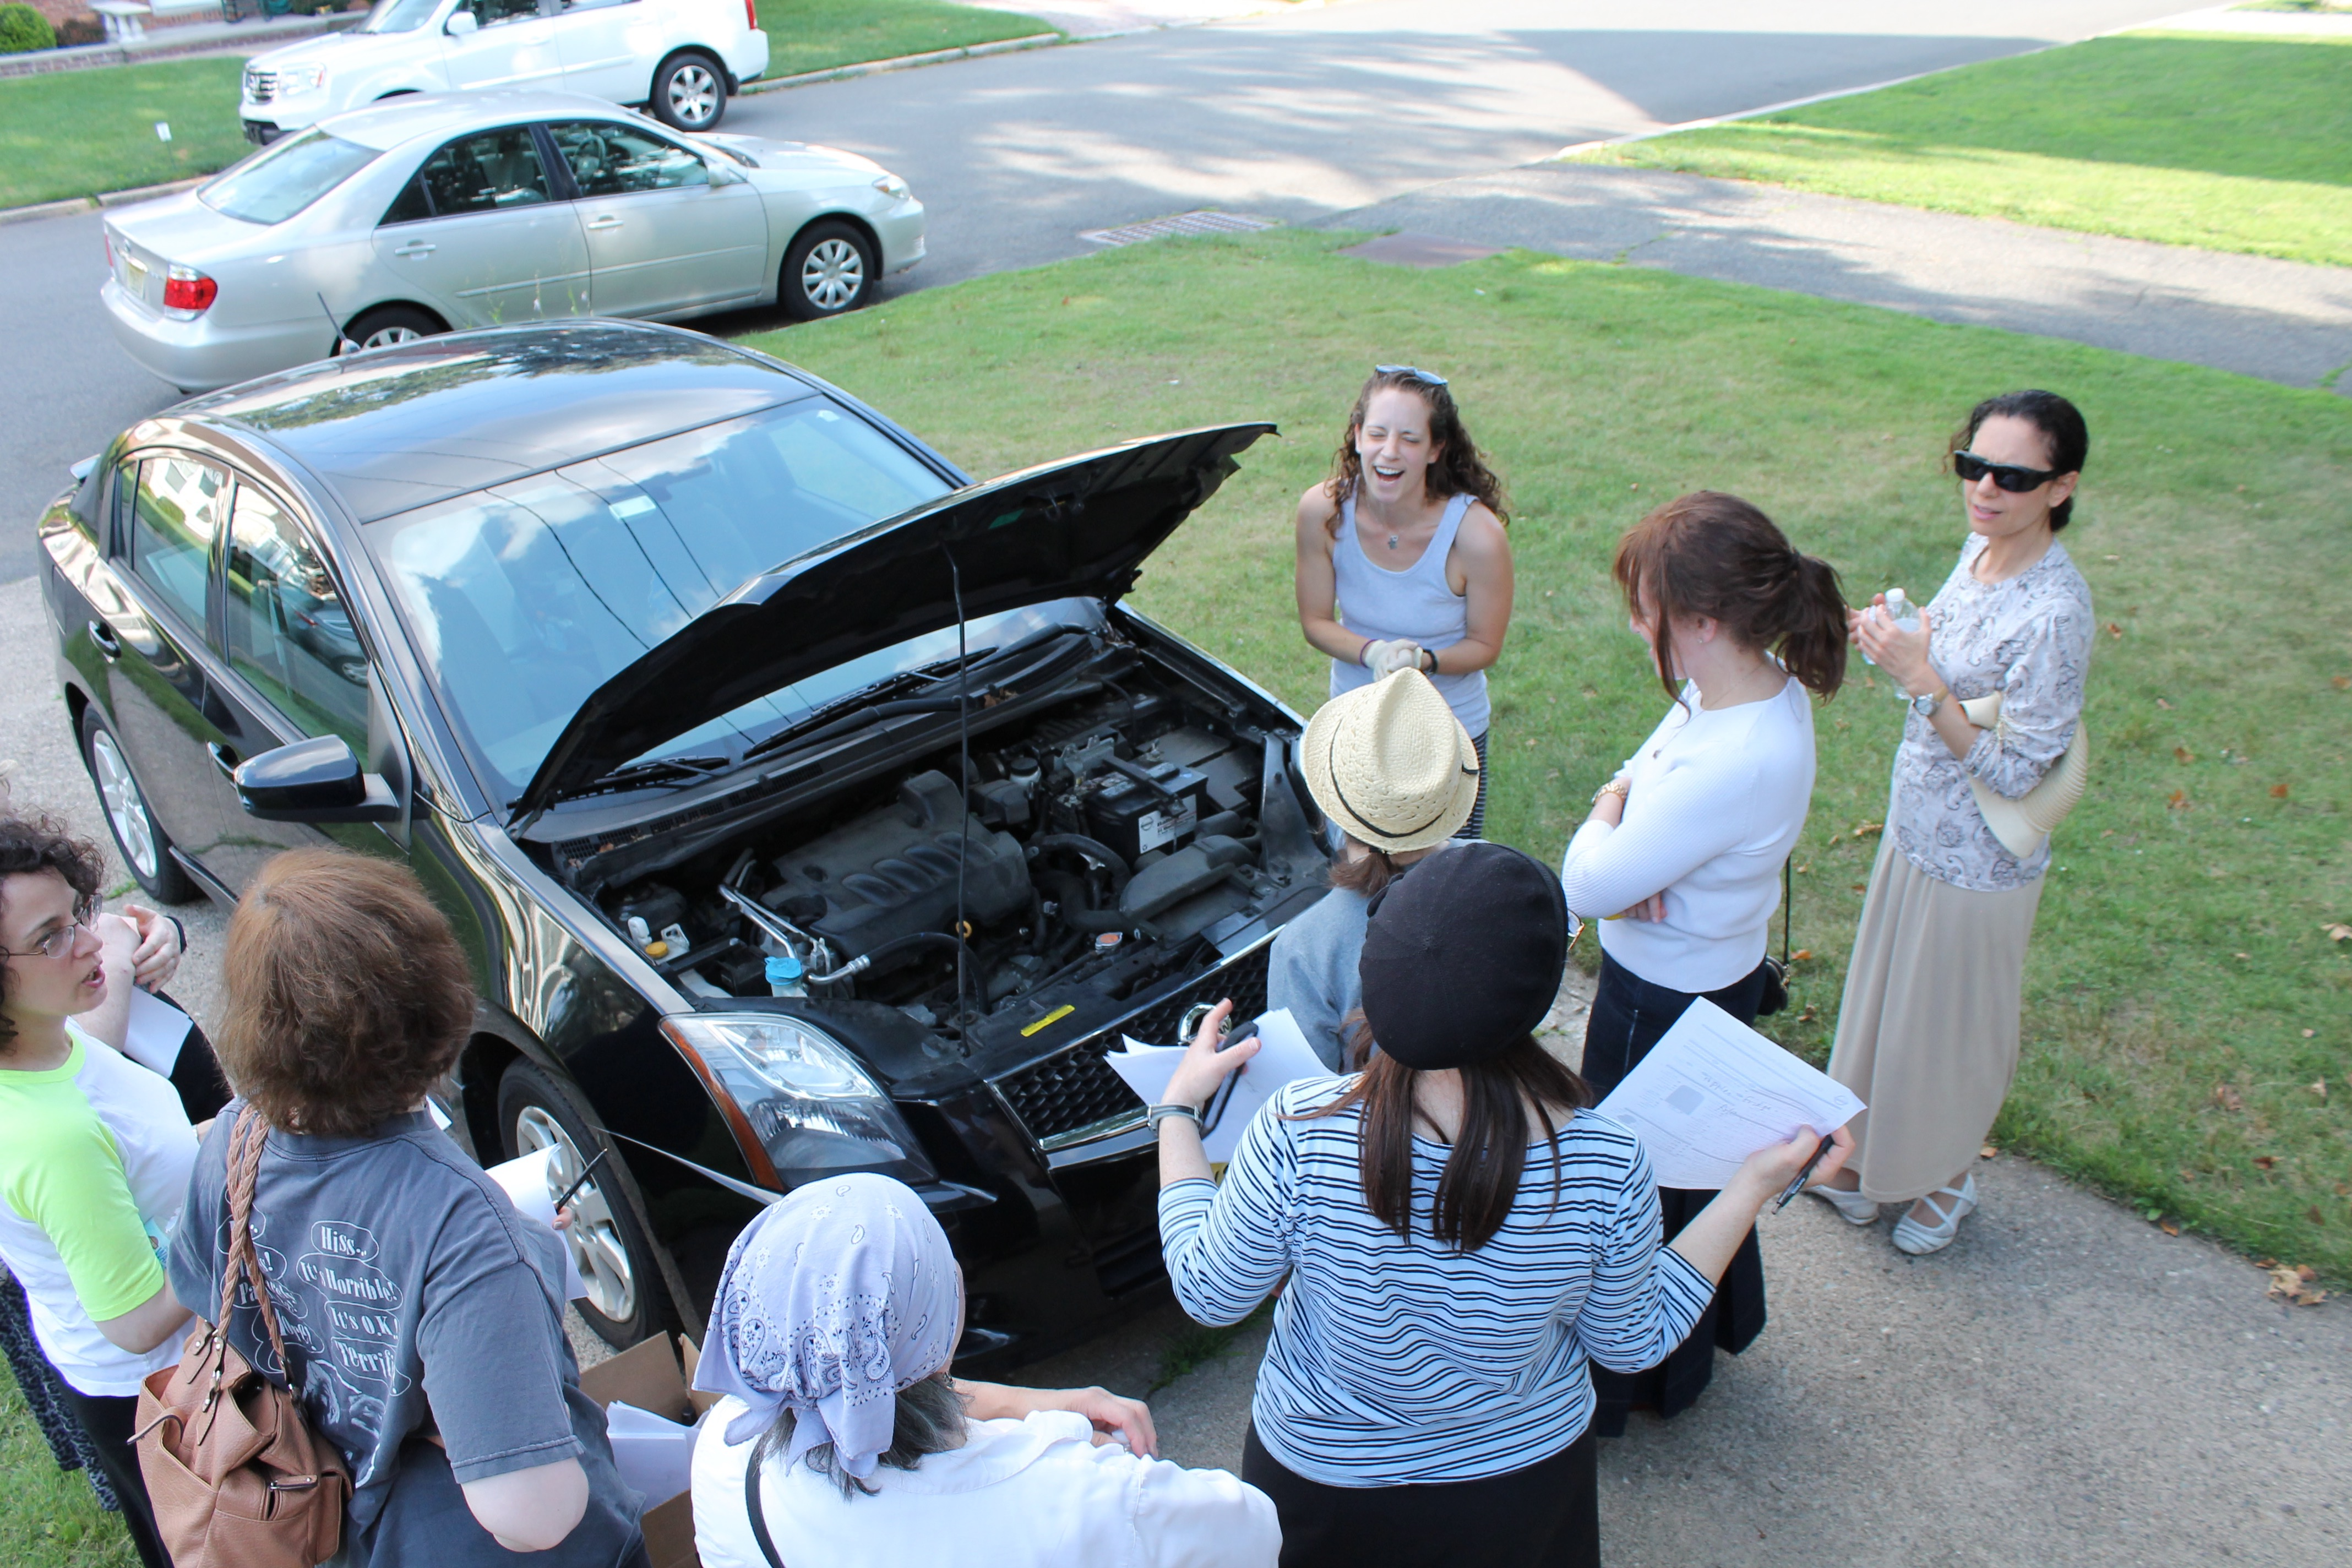 Learning About Cars With Becca - JewishLink of New Jersey